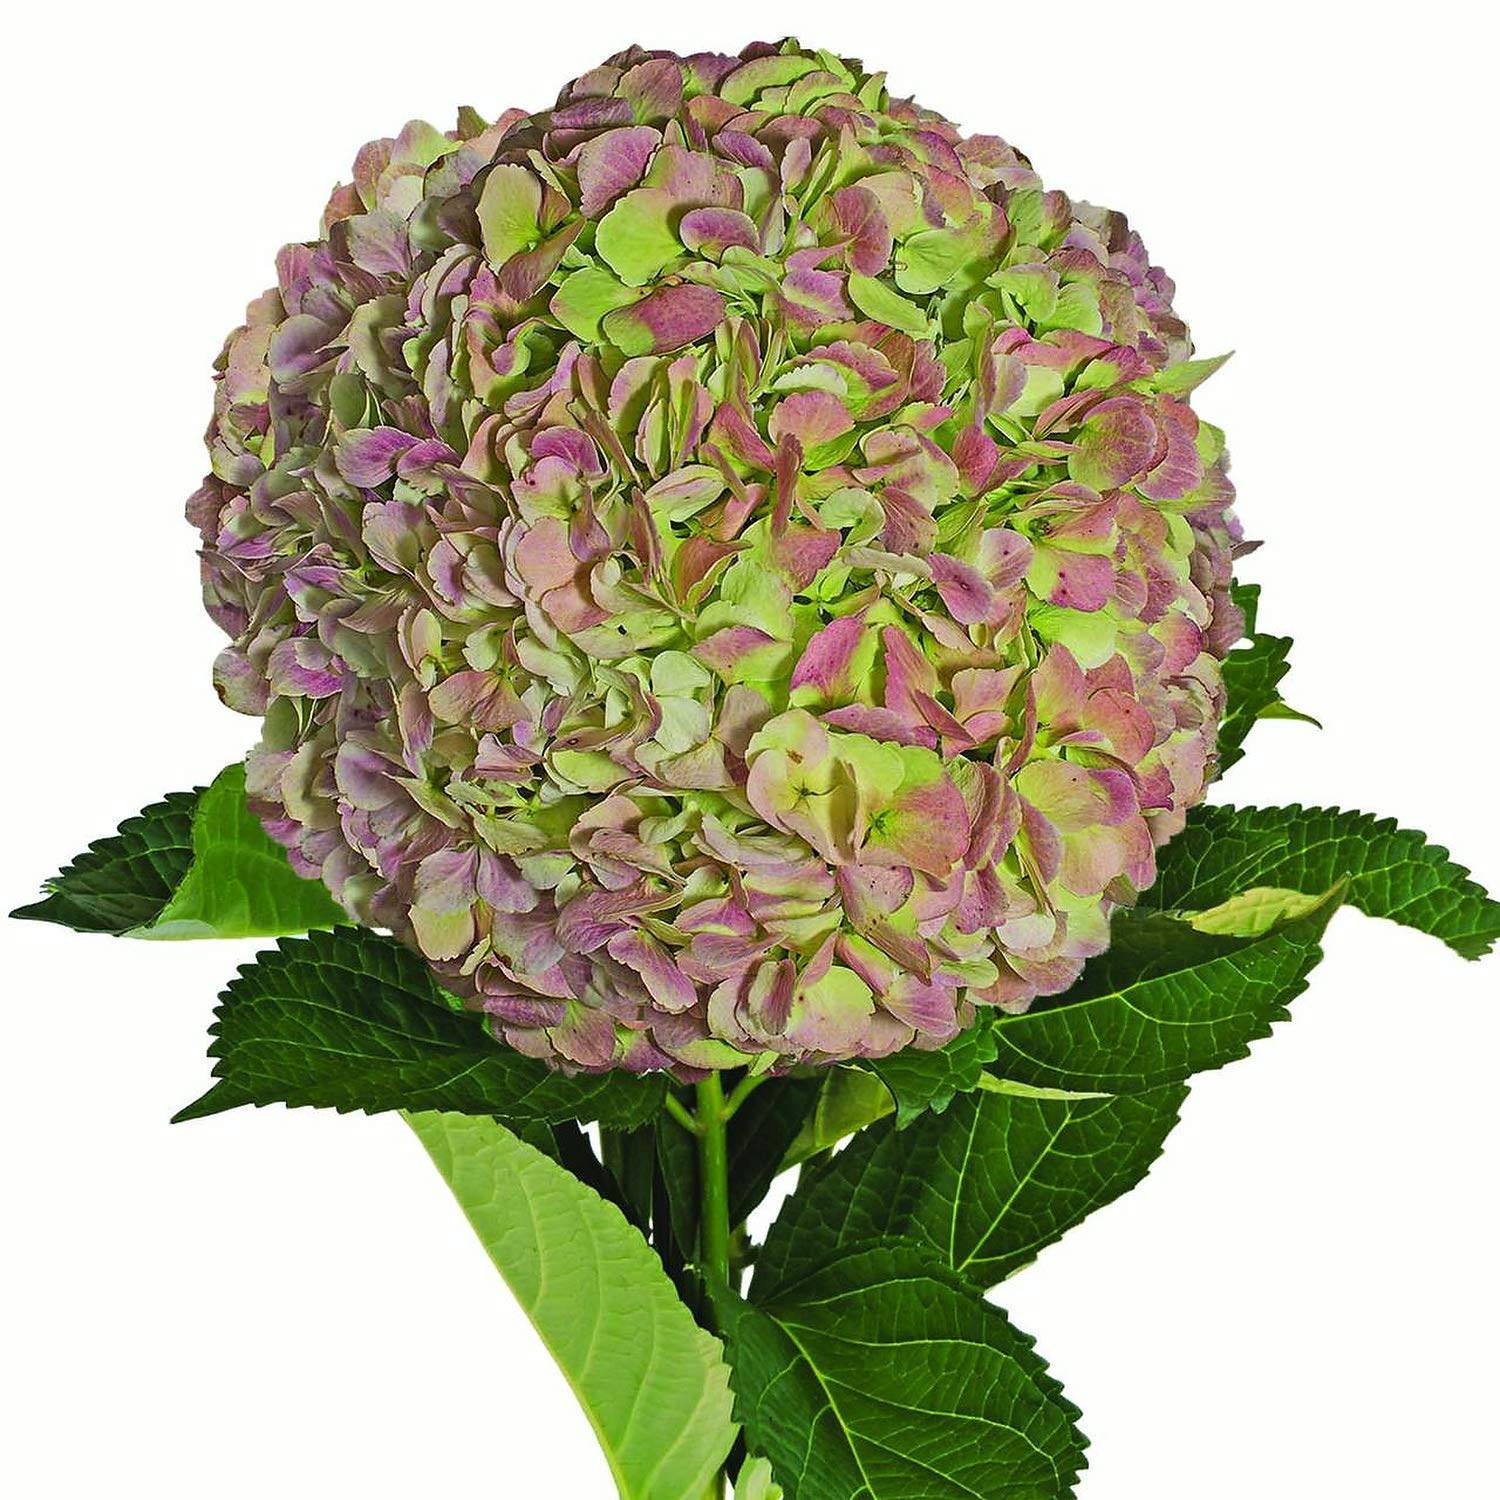 Farm Fresh Natural Jumbo Antique Green Hydrangeas - Pack 12 by Bloomingmore